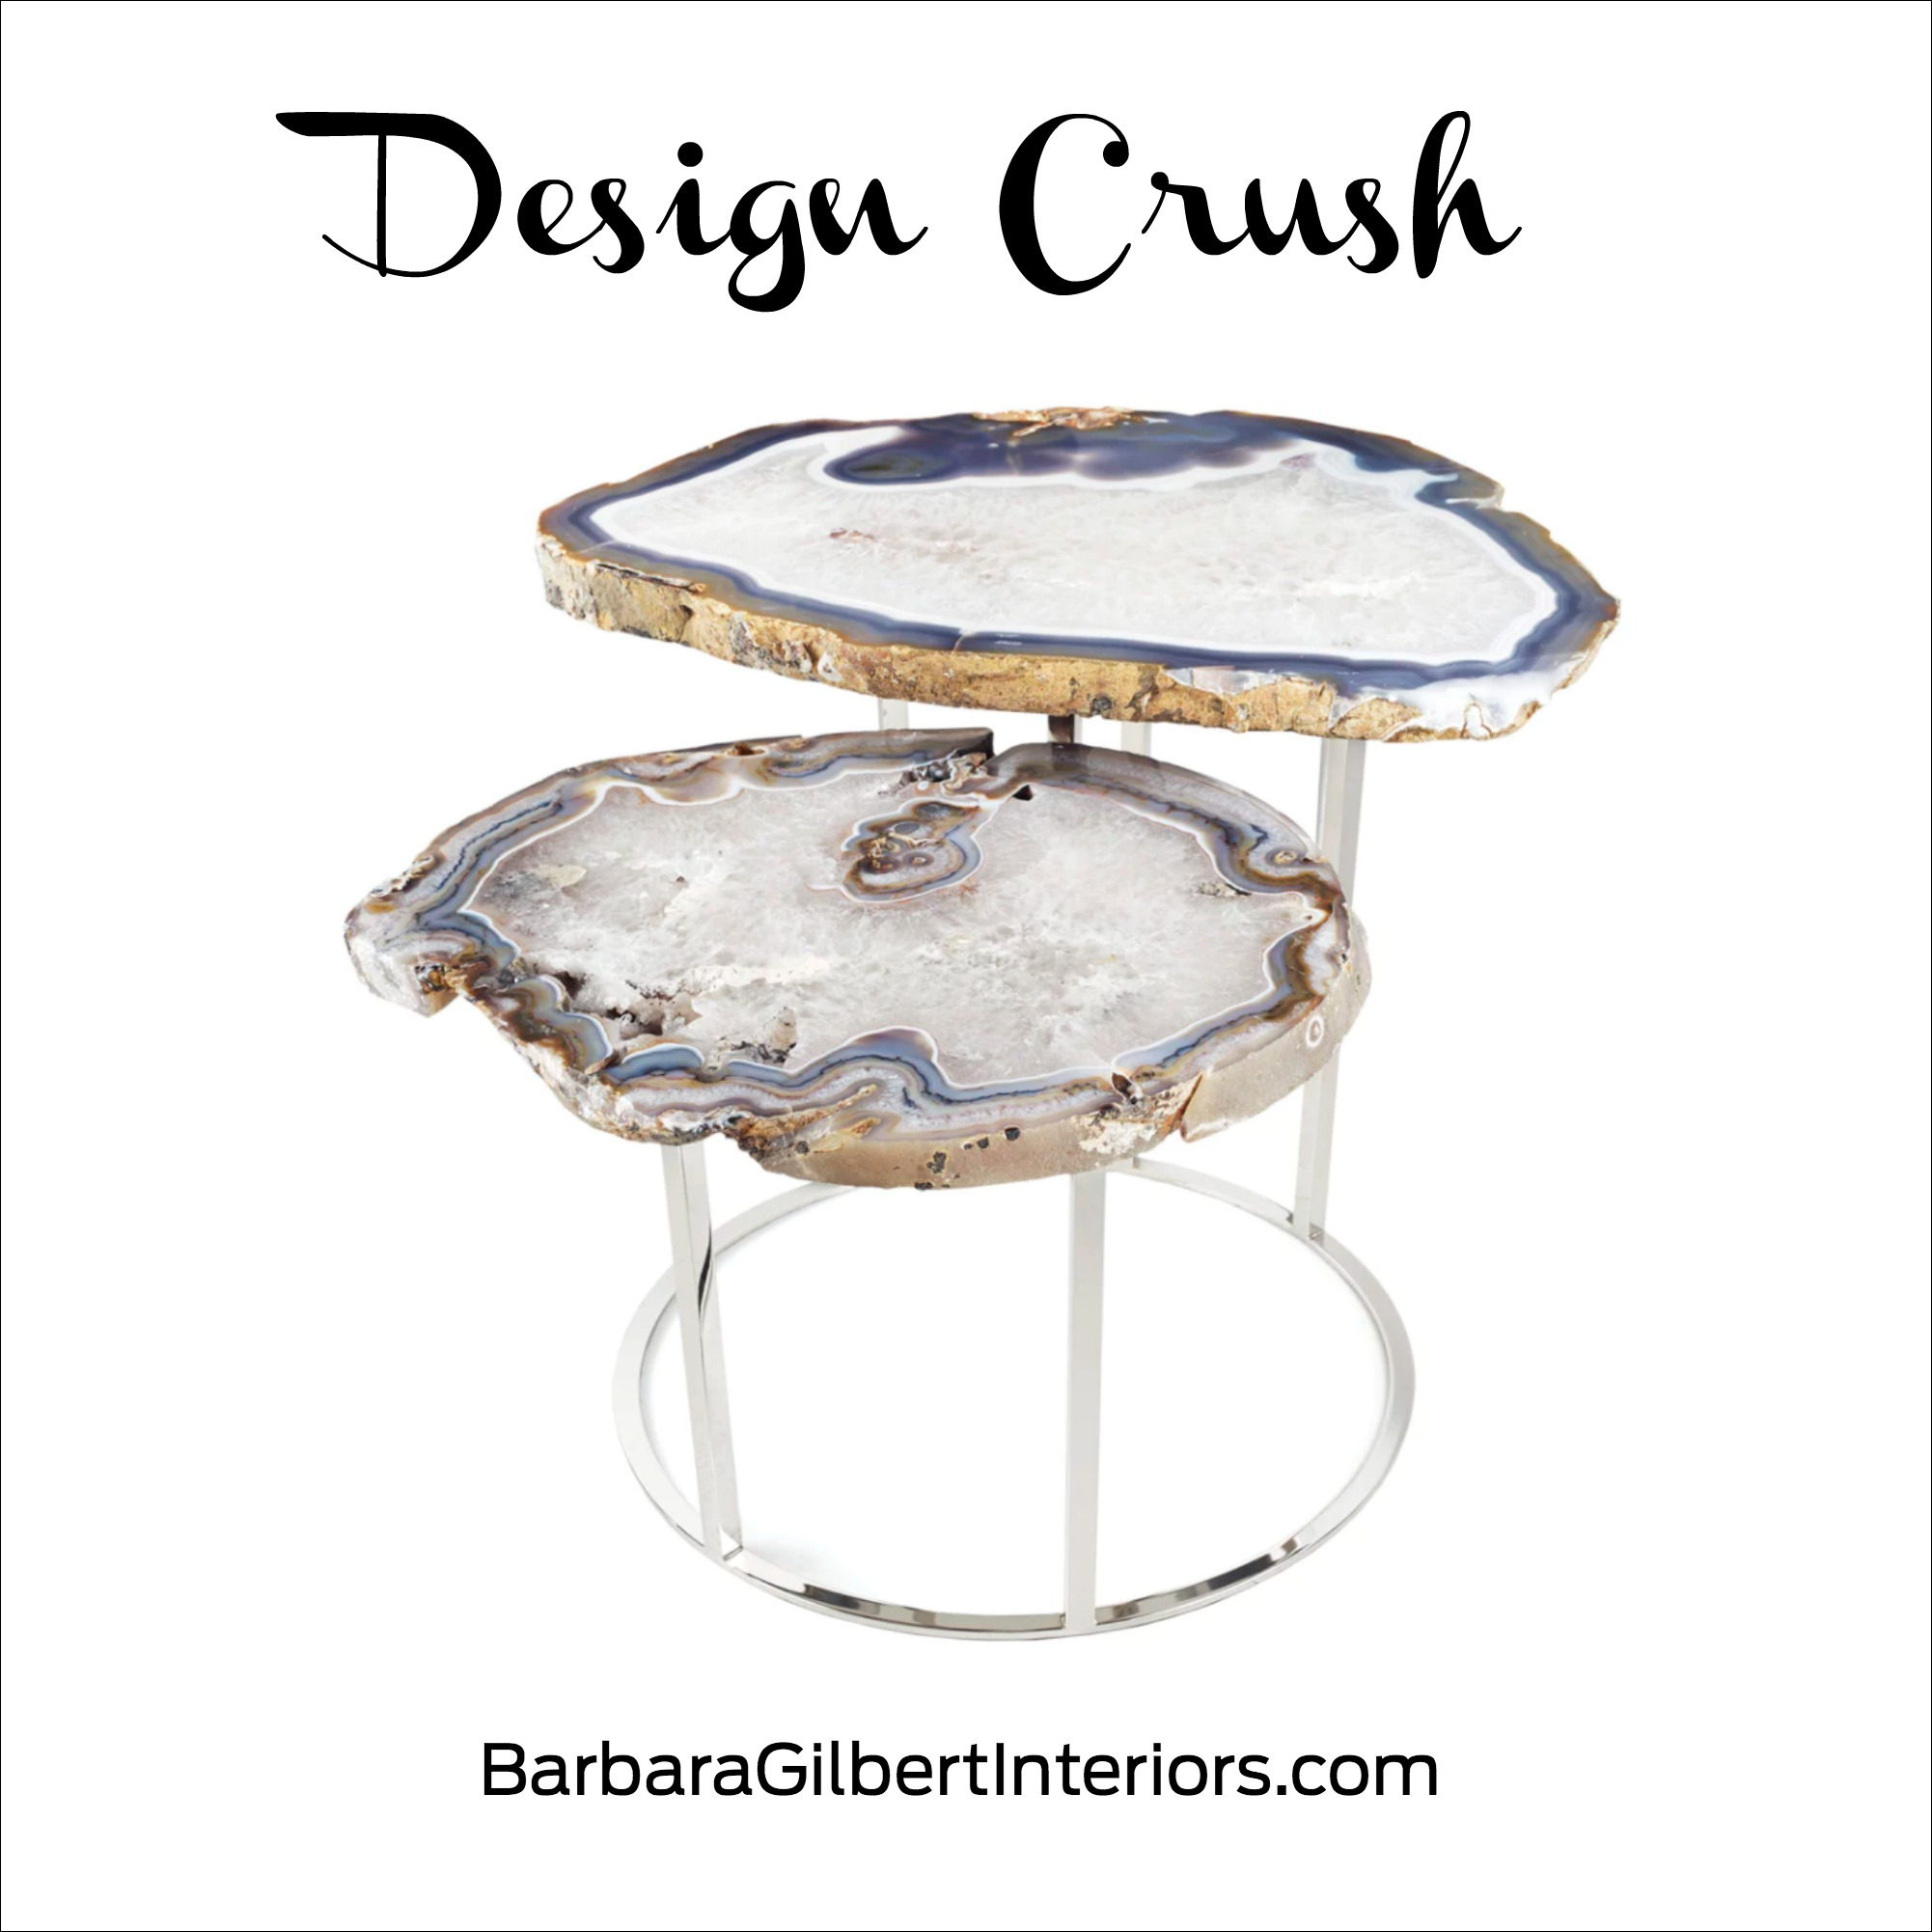 Design Crush: Quinn Agate Coffee Table | Interior Design Dallas | Barbara Gilbert Interiors